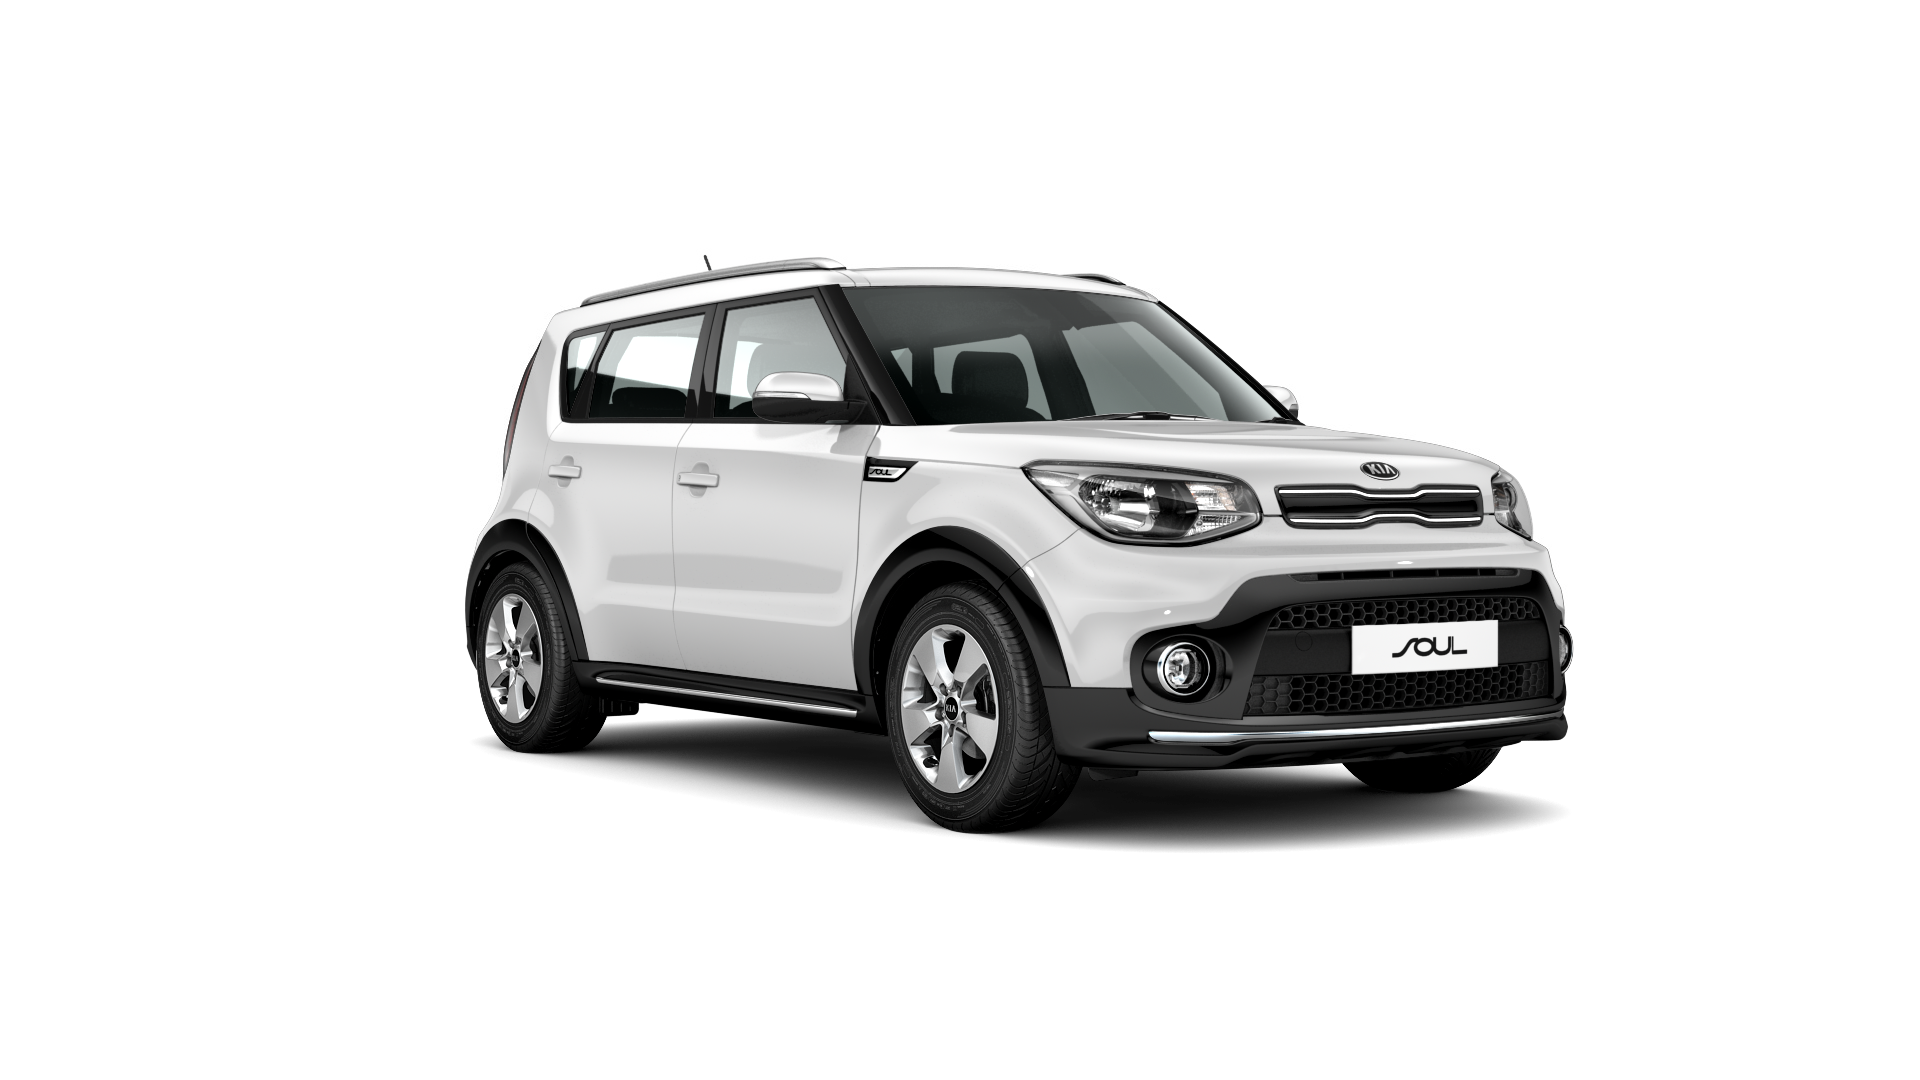 Kia Soul: Sunroof open warning (if equipped)